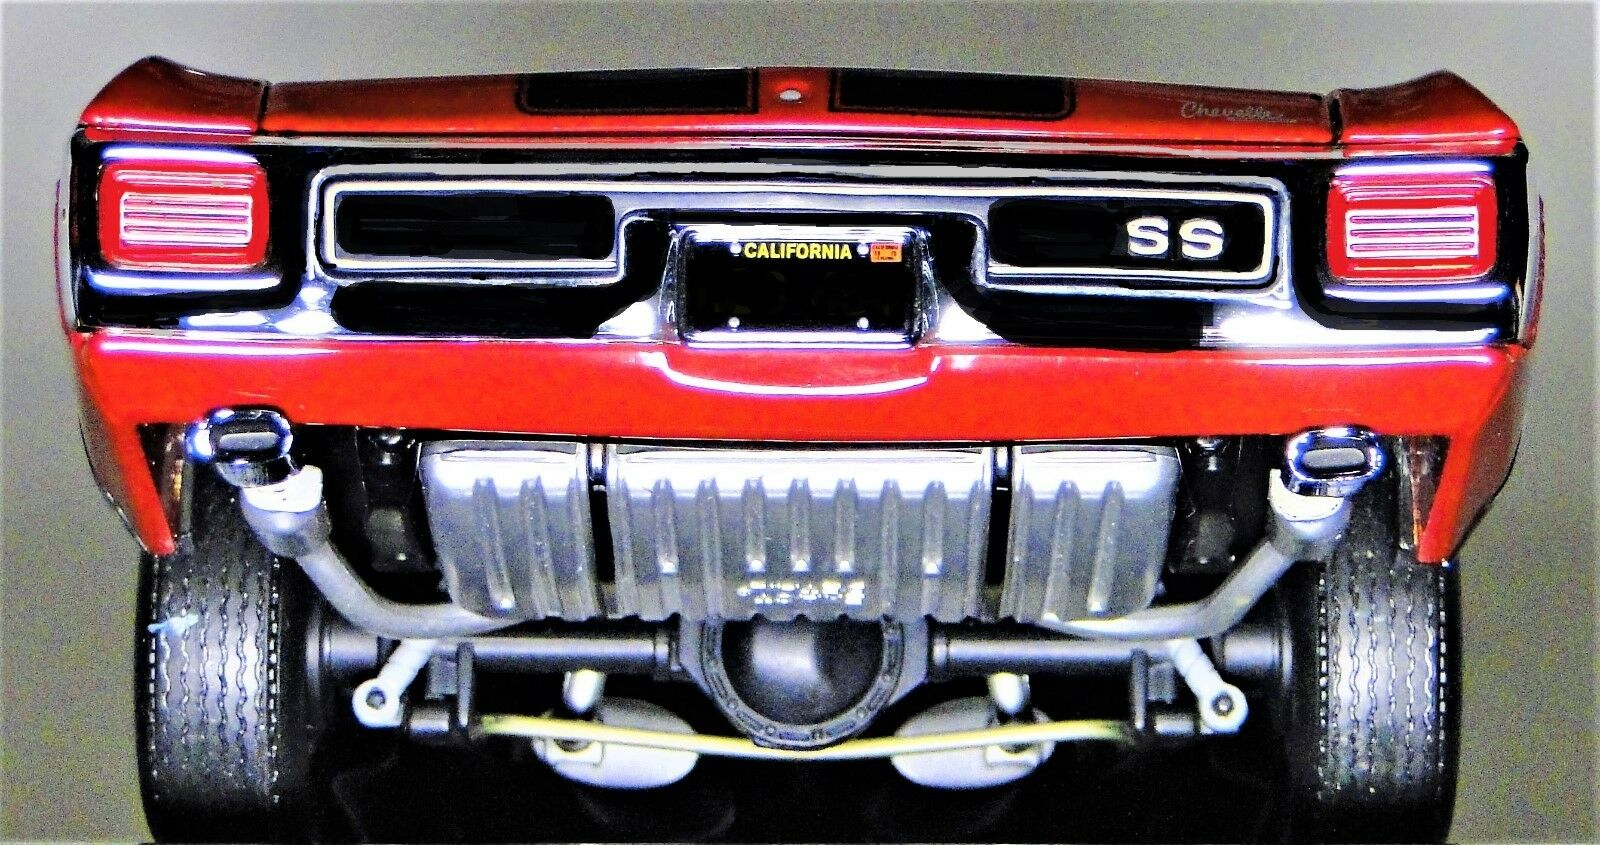 Chevy Chevy Chevy 1970 Chevelle SS 1 Chevrolet Car 24 Drag 18 Race 12 Carousel rosso lS 454 6 fd57cb